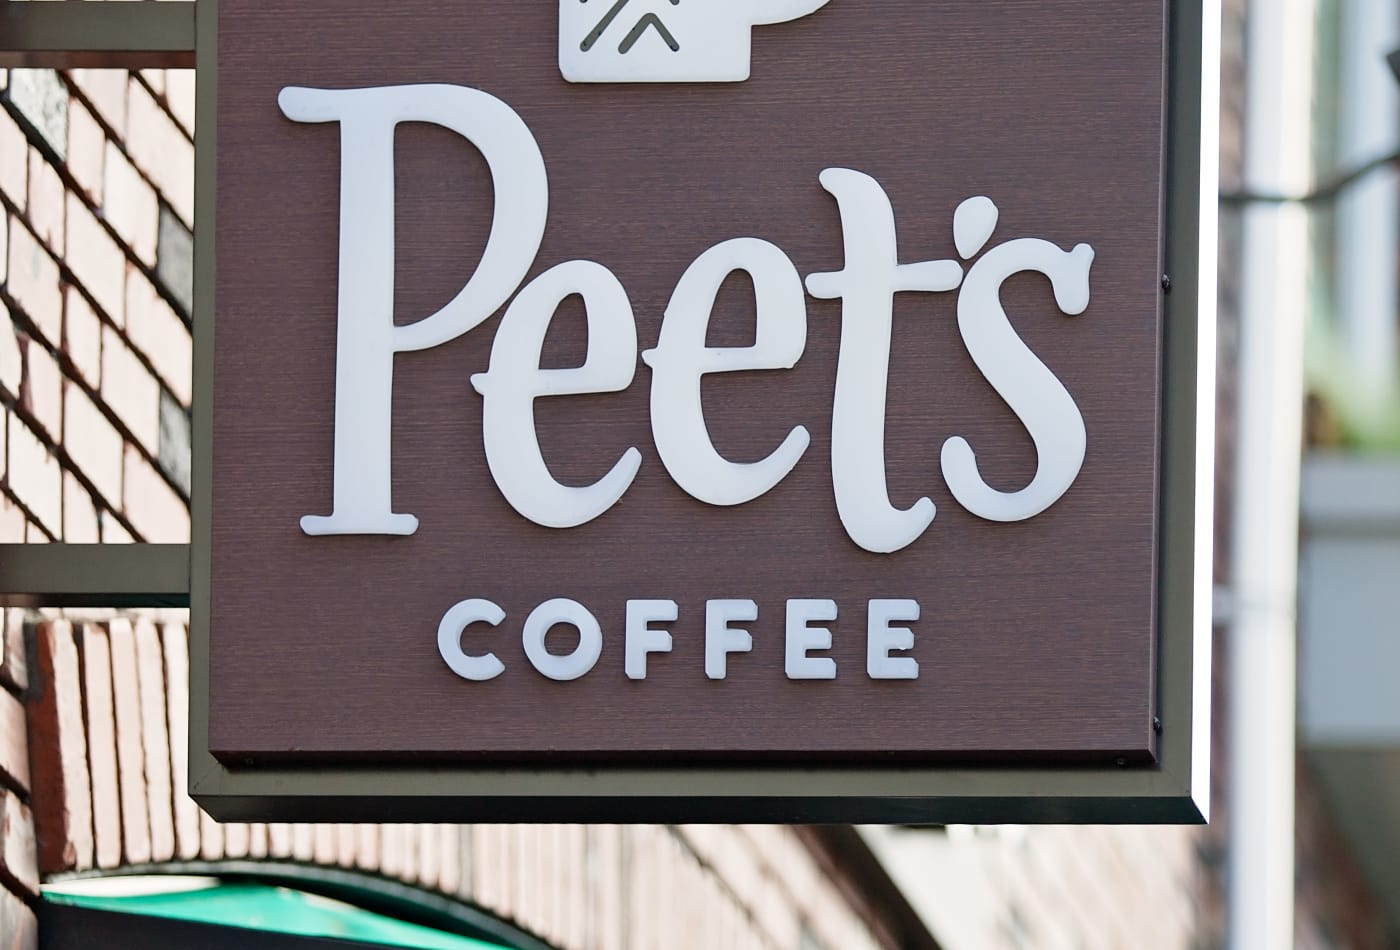 Peet's coffee sign outside their store in Lake Oswego